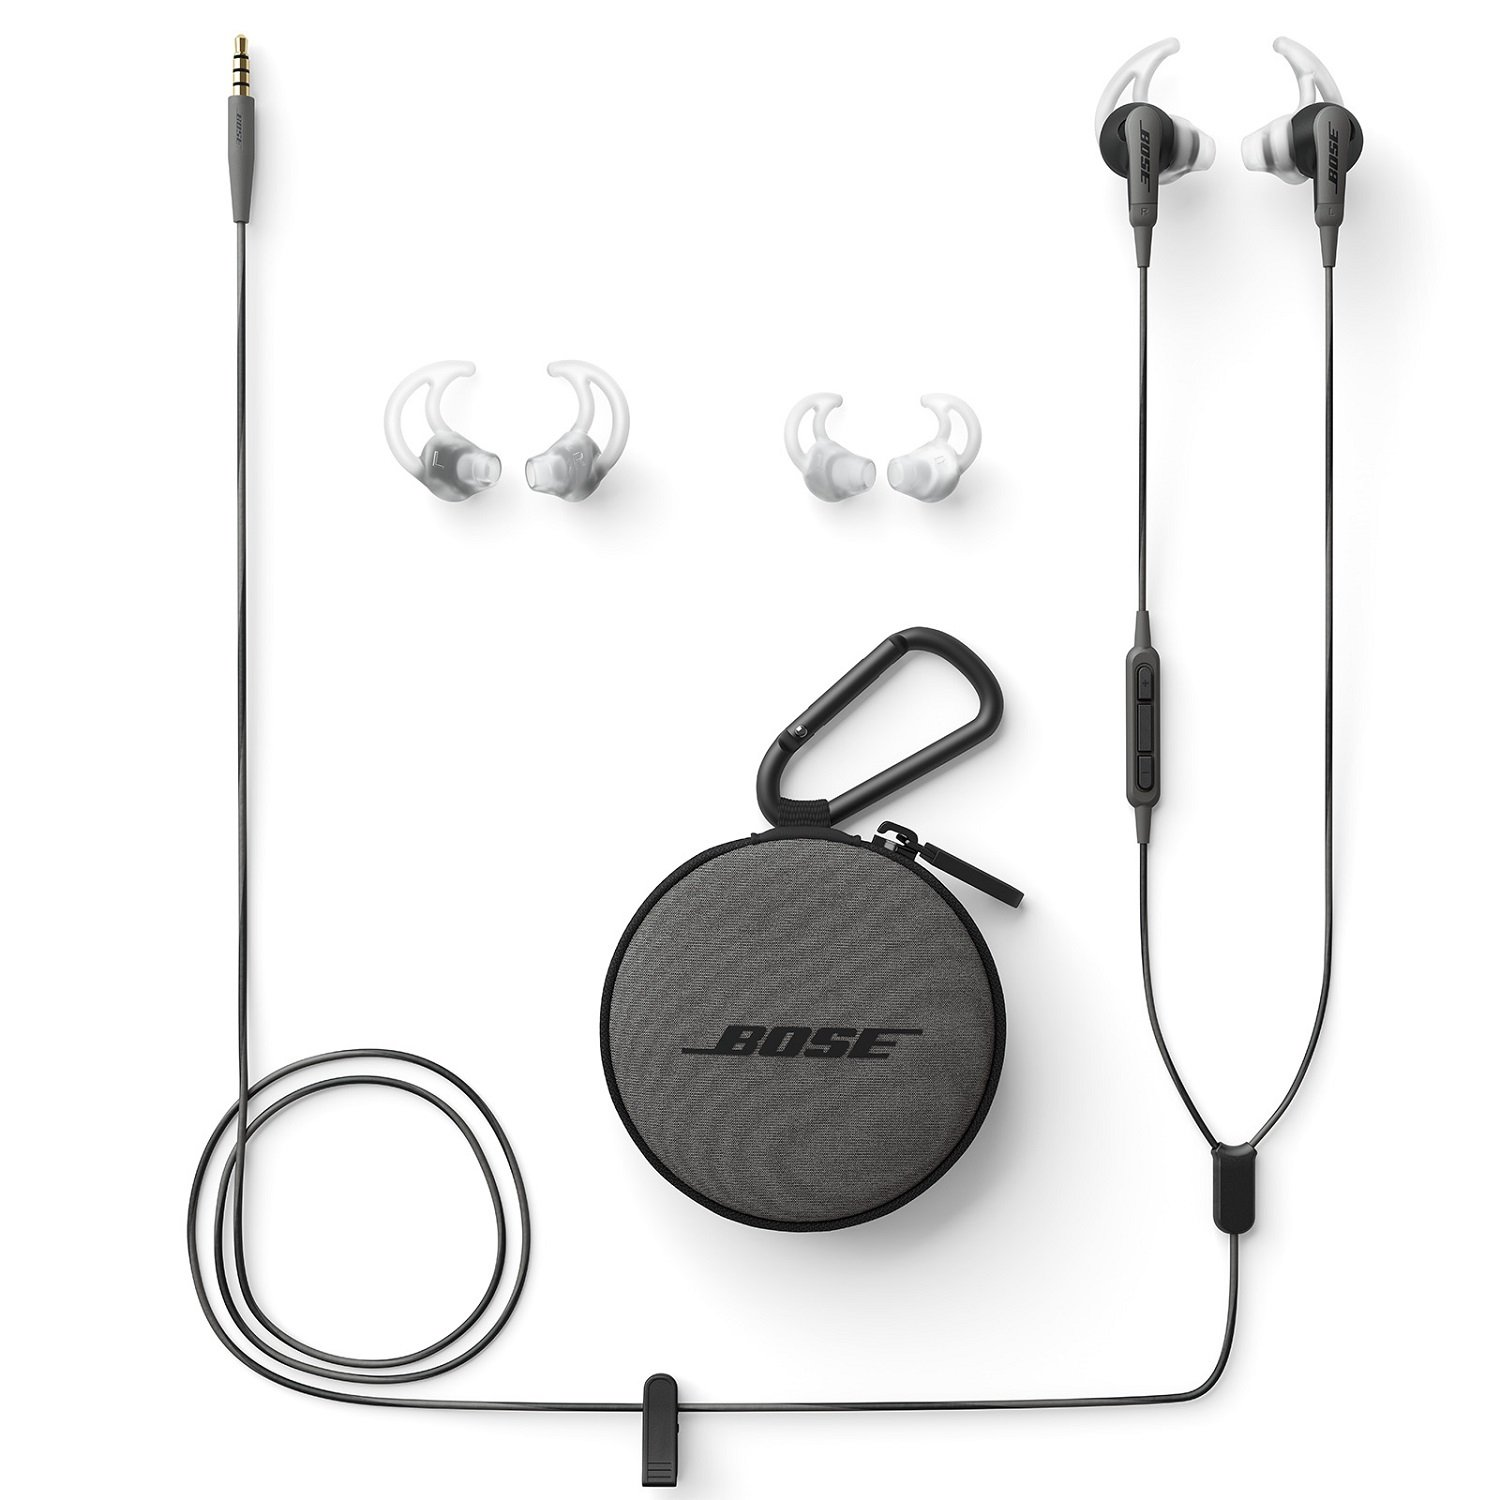 bose ultrasound. amazon.com: bose soundsport in-ear headphones - apple devices charcoal: home audio \u0026 theater ultrasound a